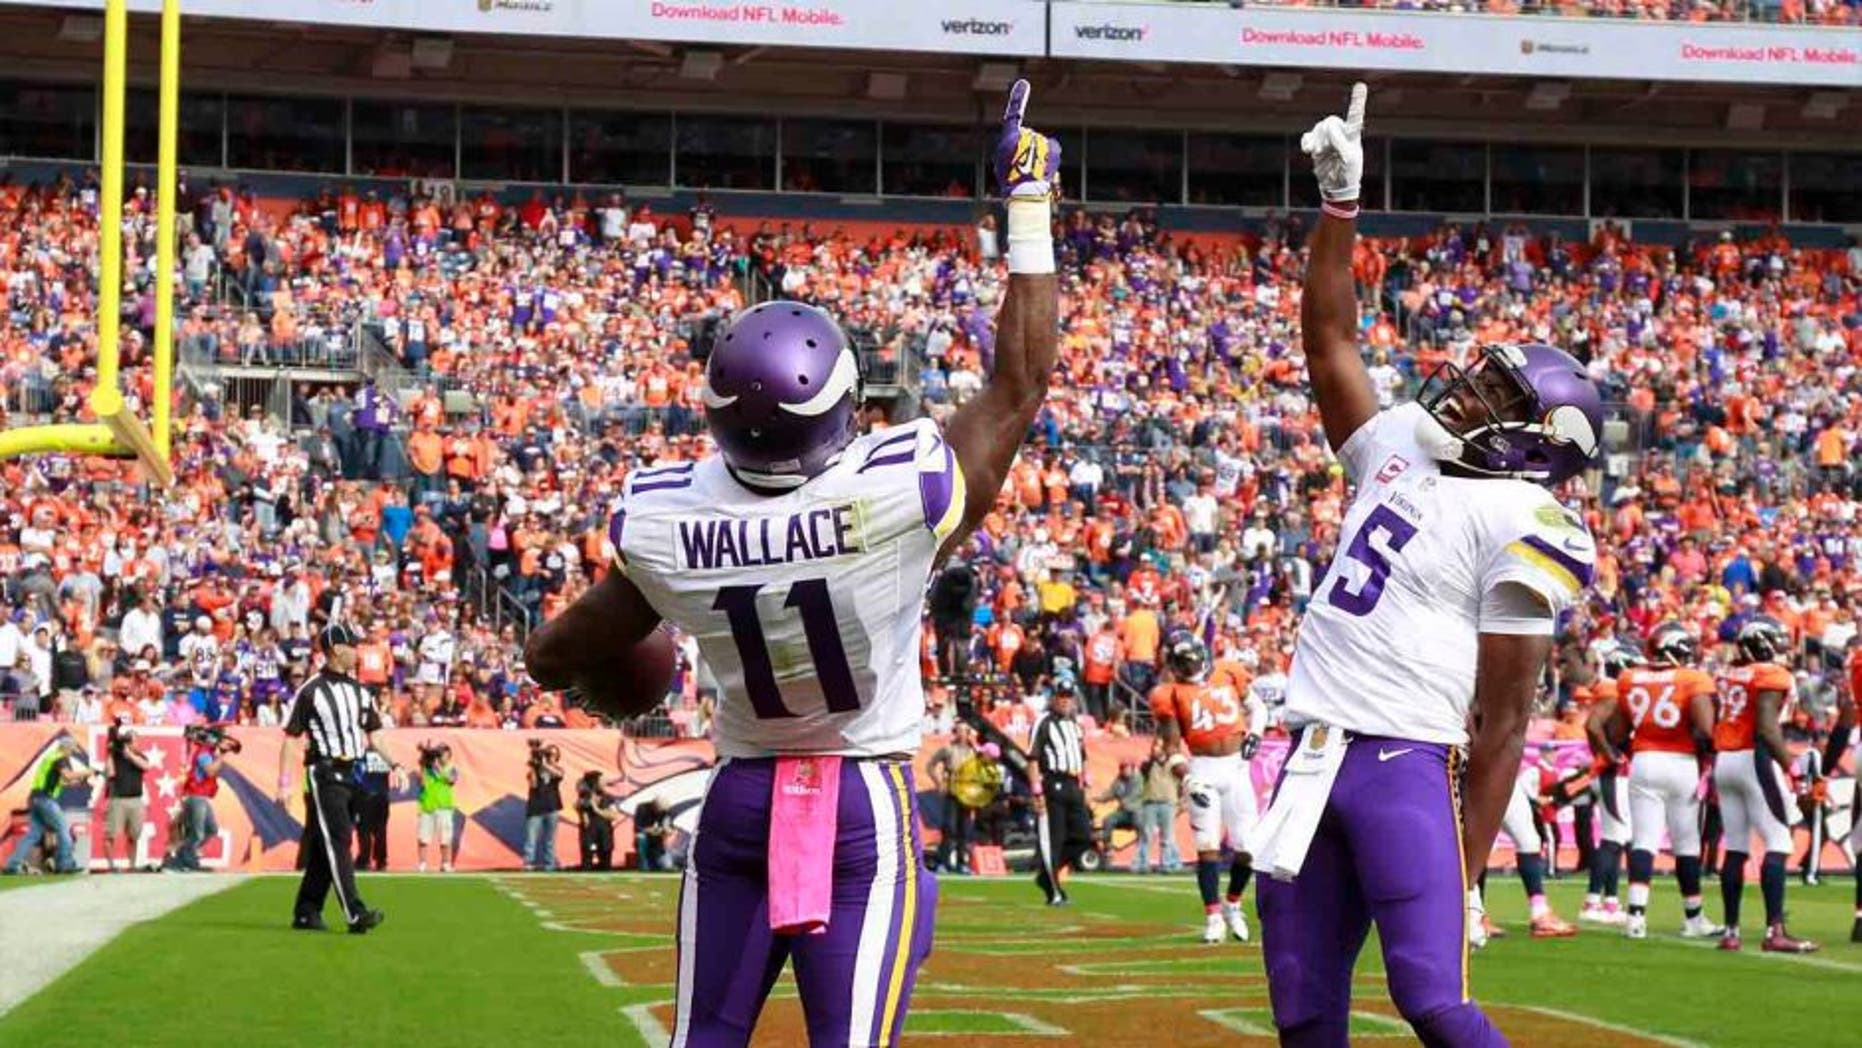 Sunday, Oct. 4: Minnesota Vikings wide receiver Mike Wallace celebrates after scoring with quarterback Teddy Bridgewater during the first half against the Denver Broncos.